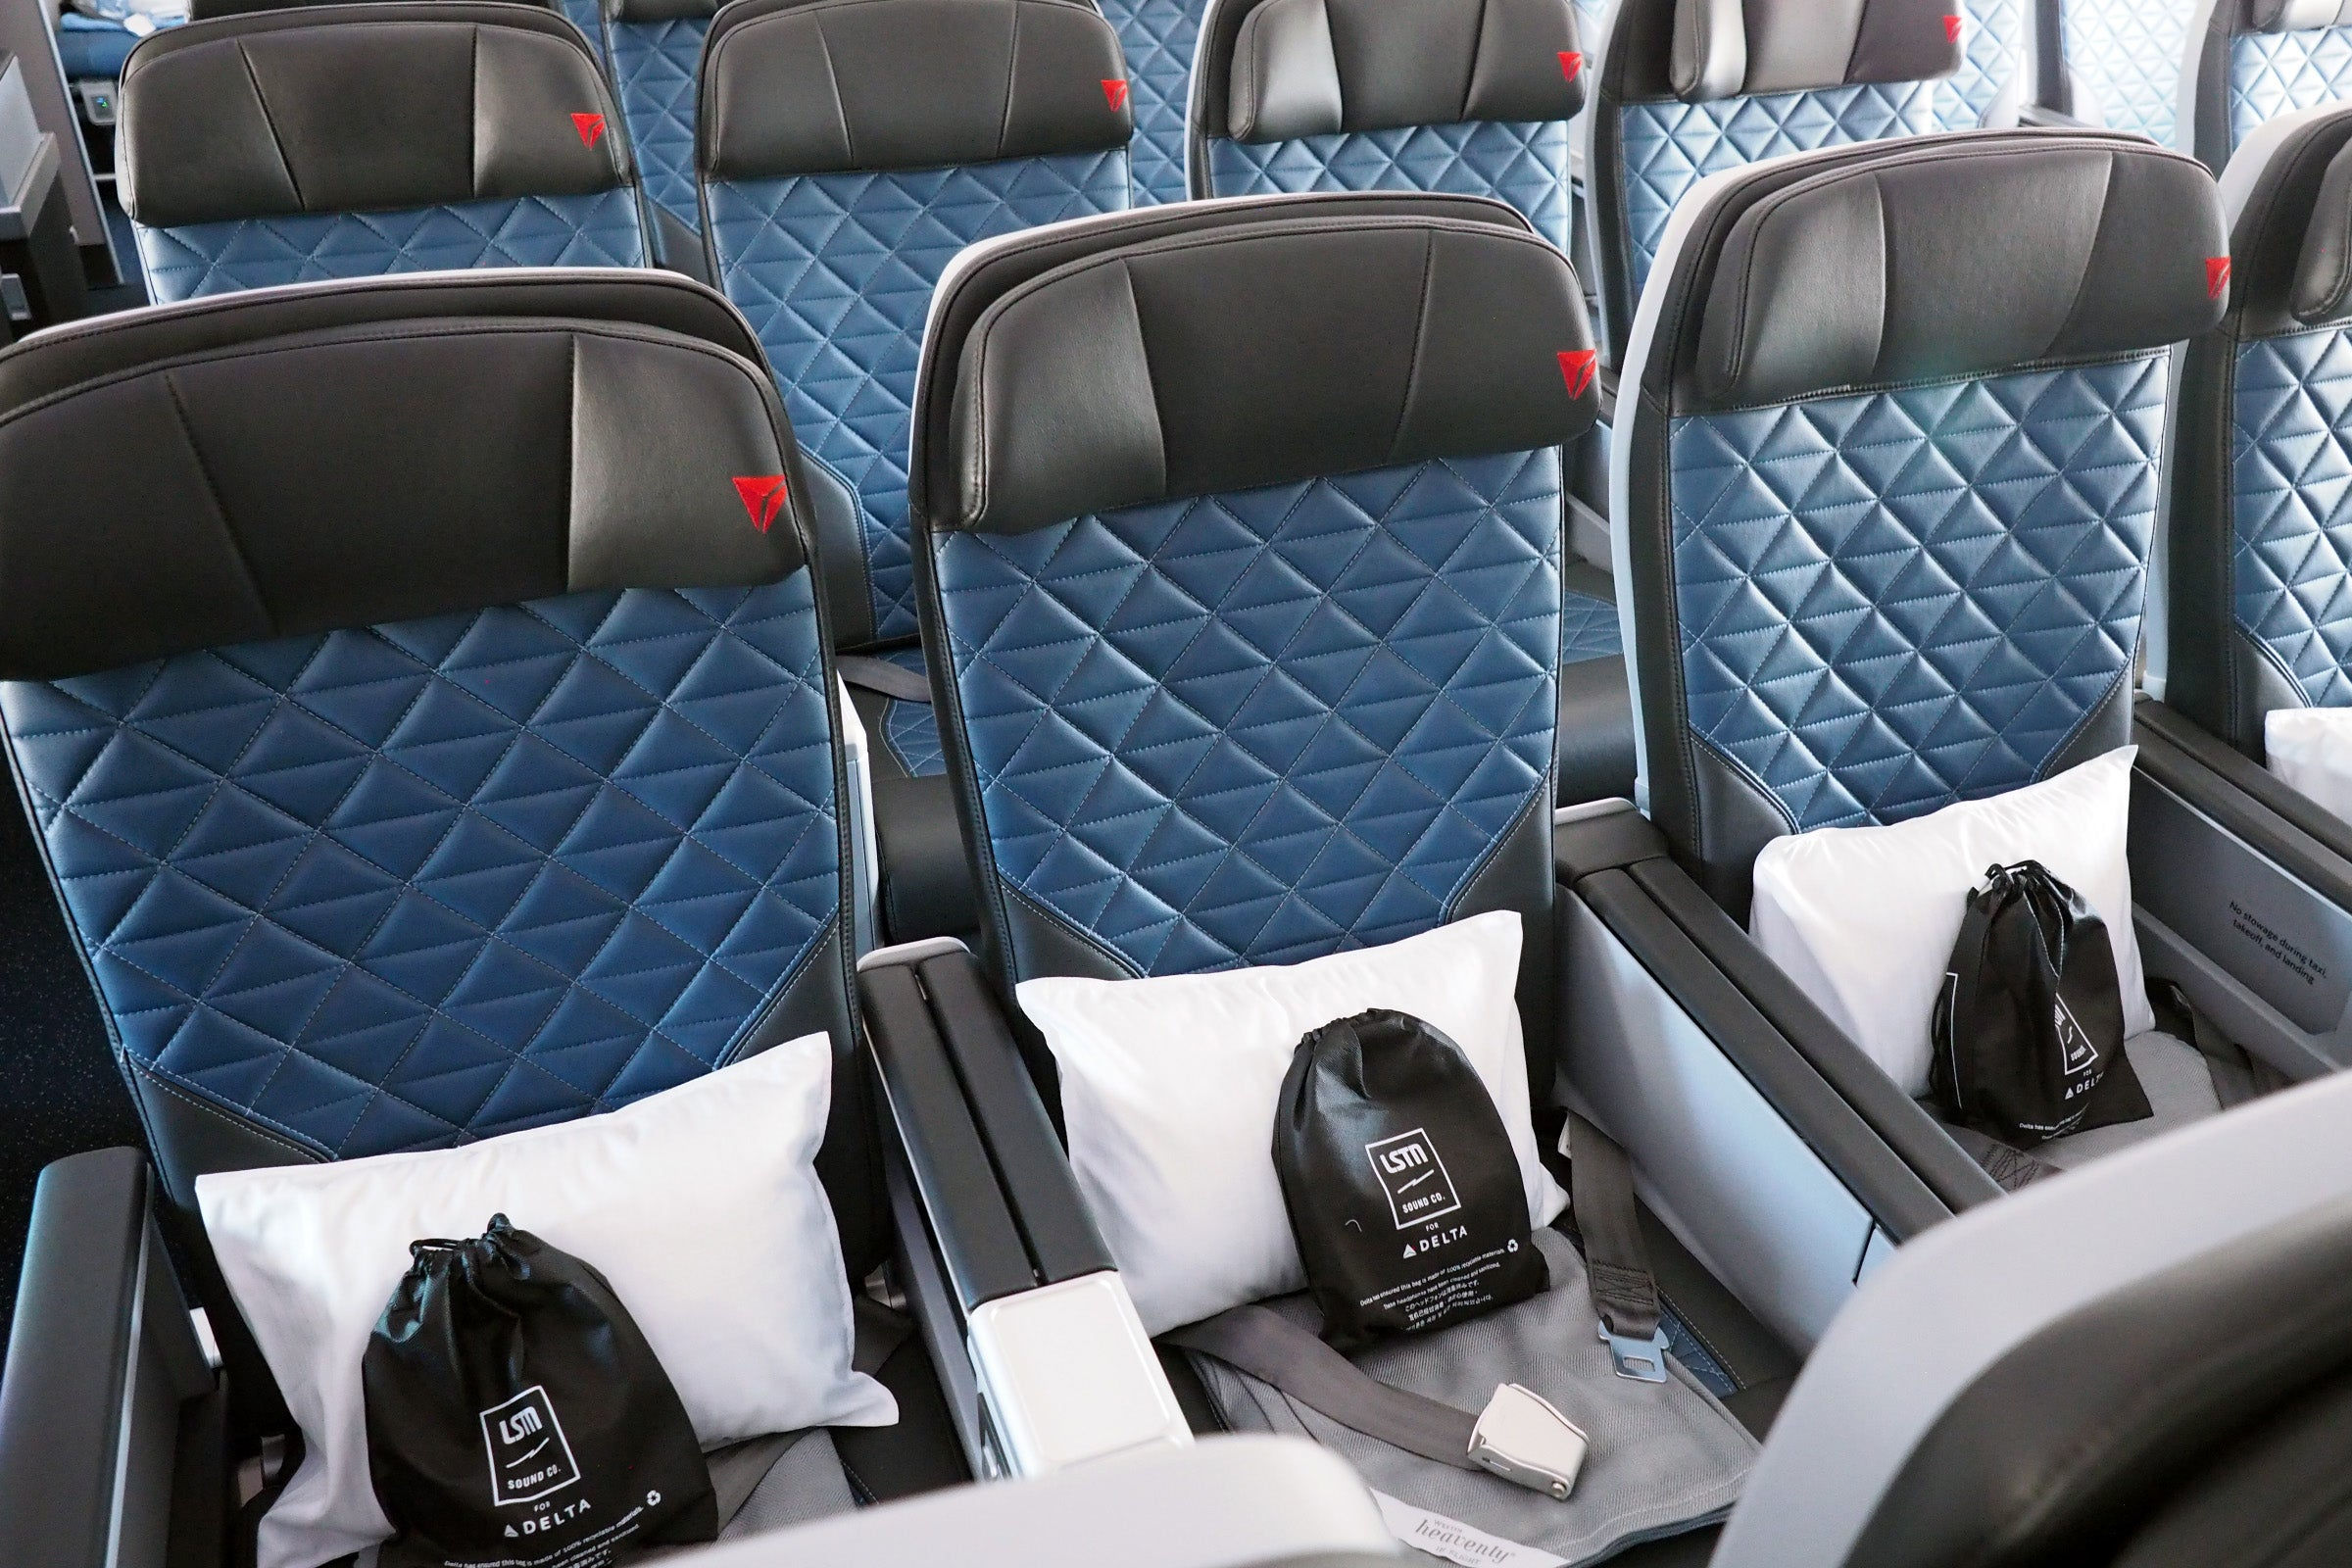 9 Things to Know About Delta Premium Select